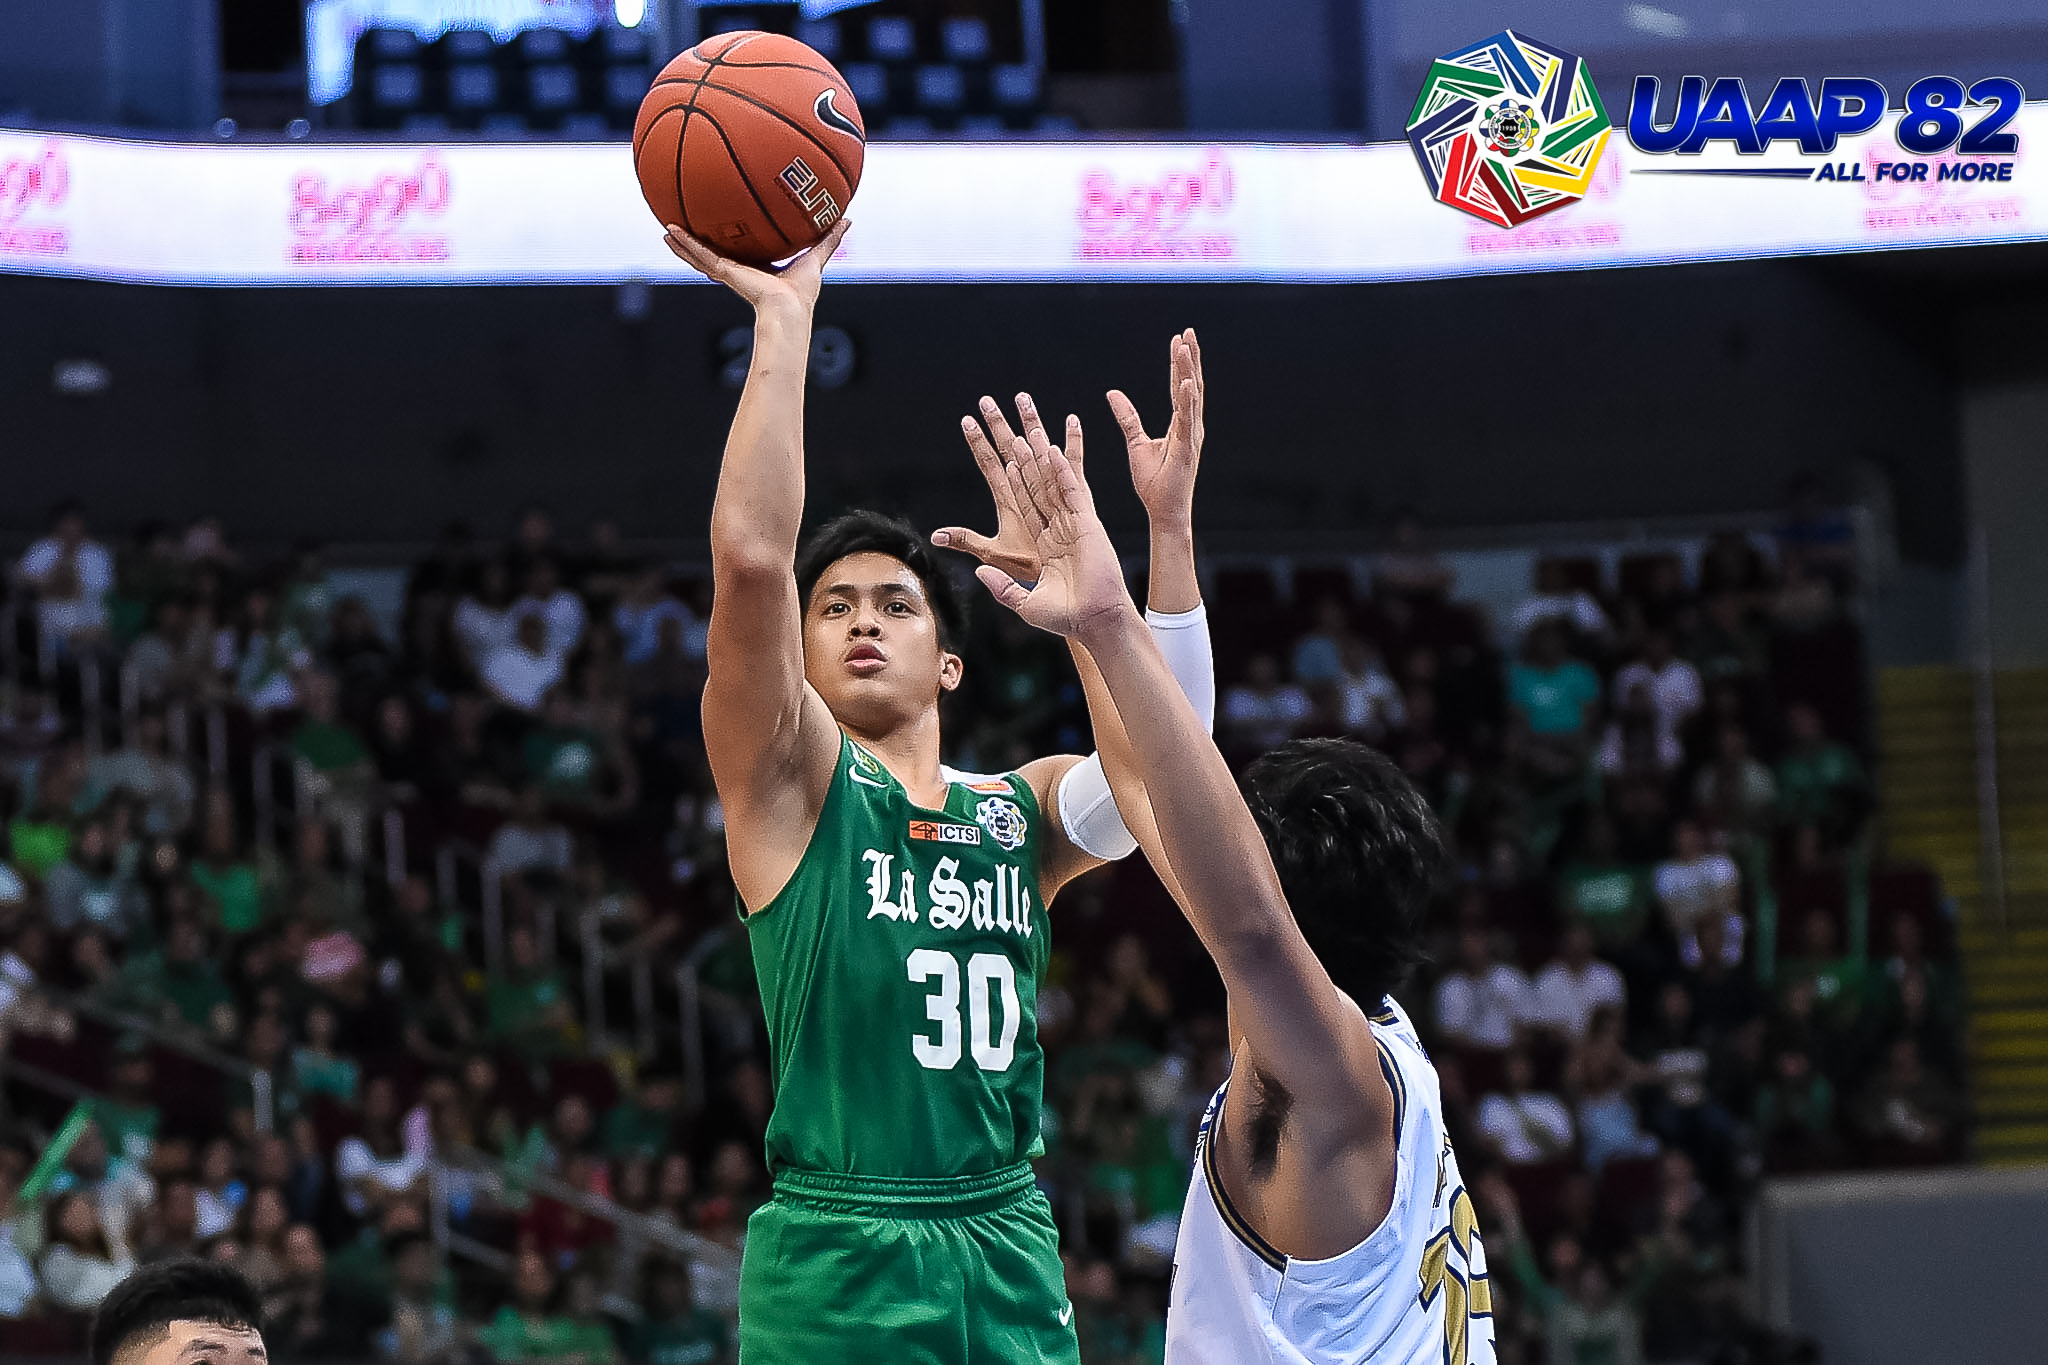 La Salle makes it back-to-back wins, extends NU's woes